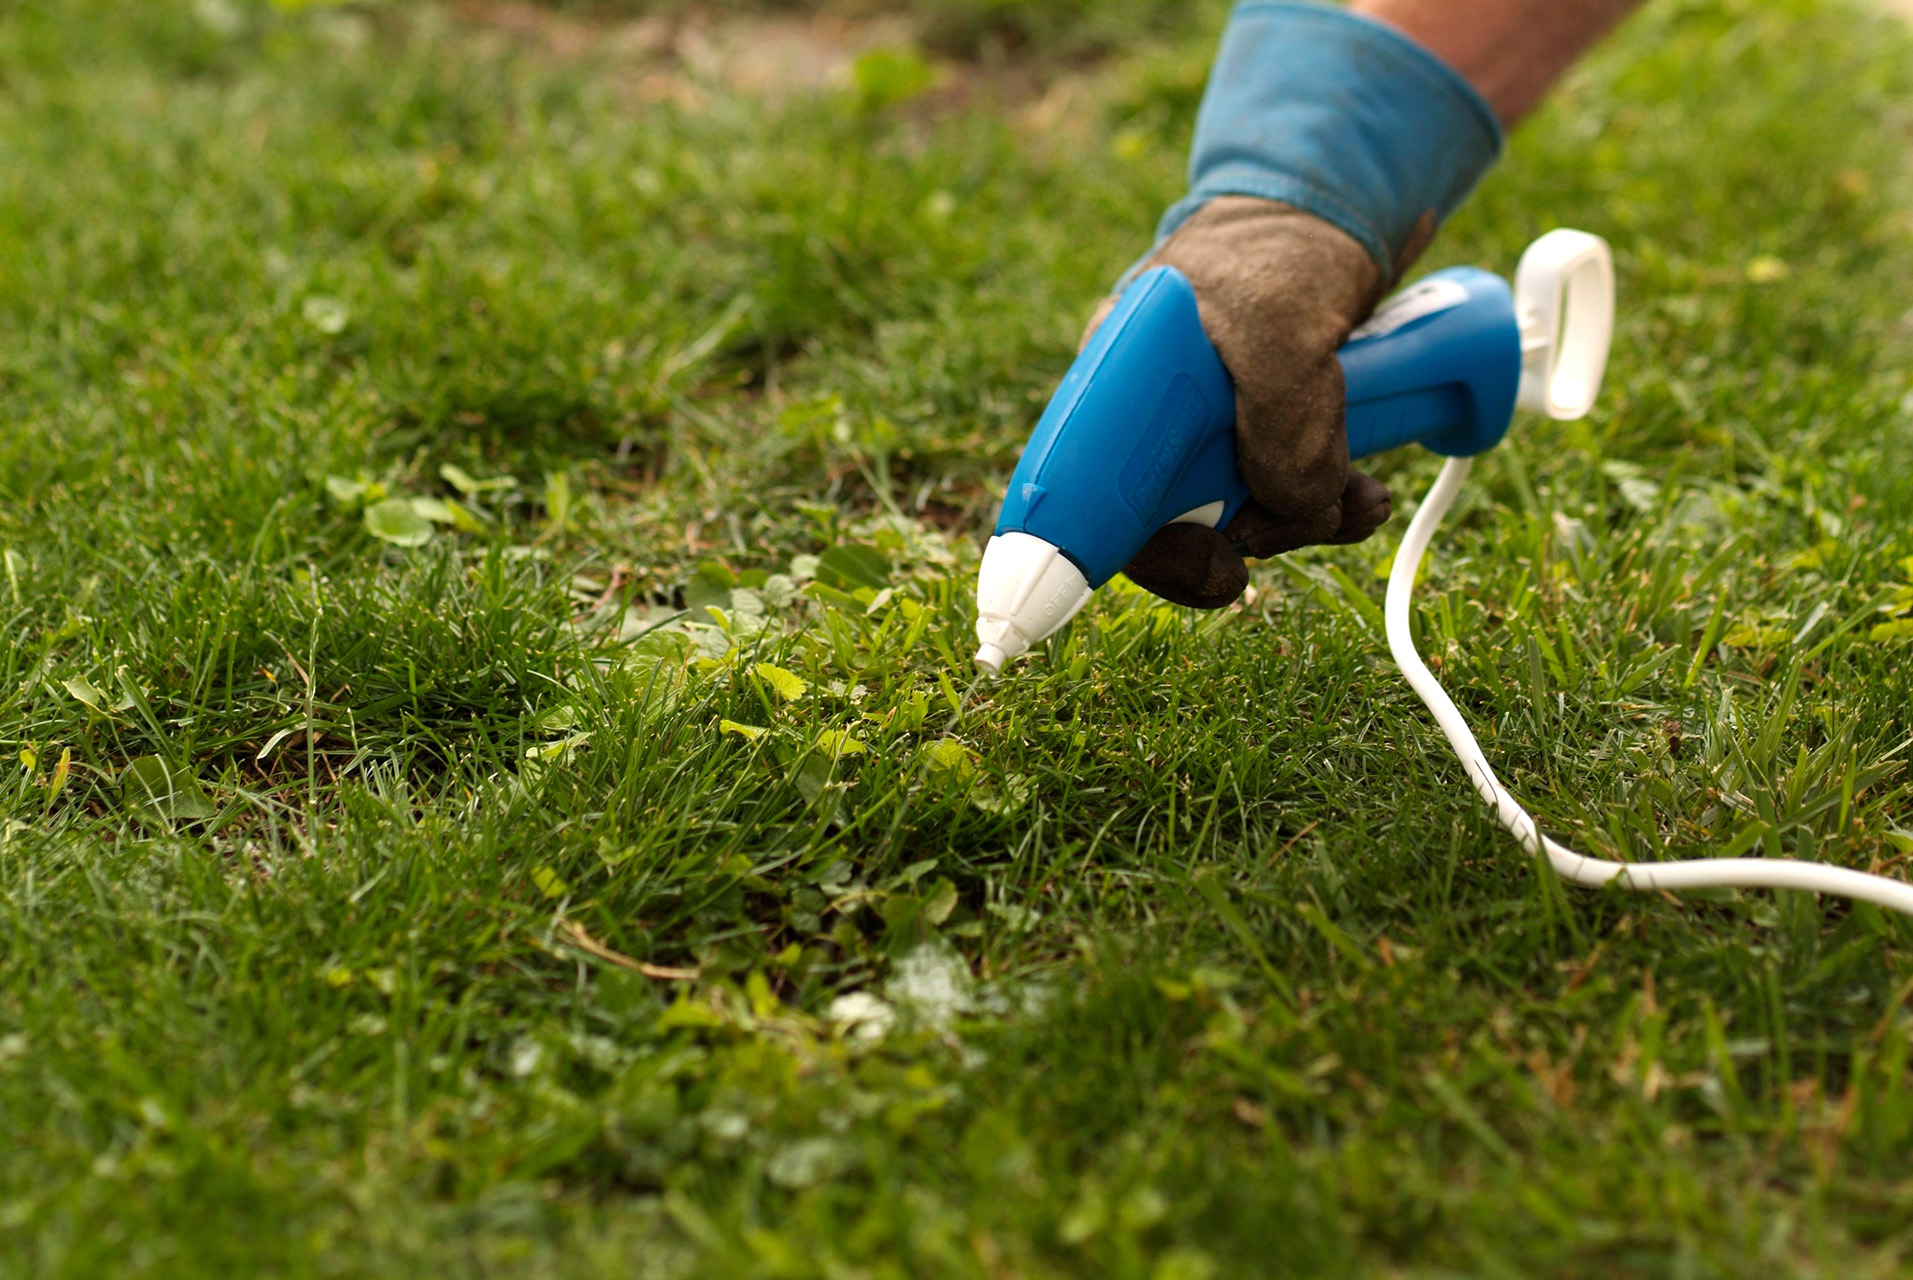 spray lawn with herbicide